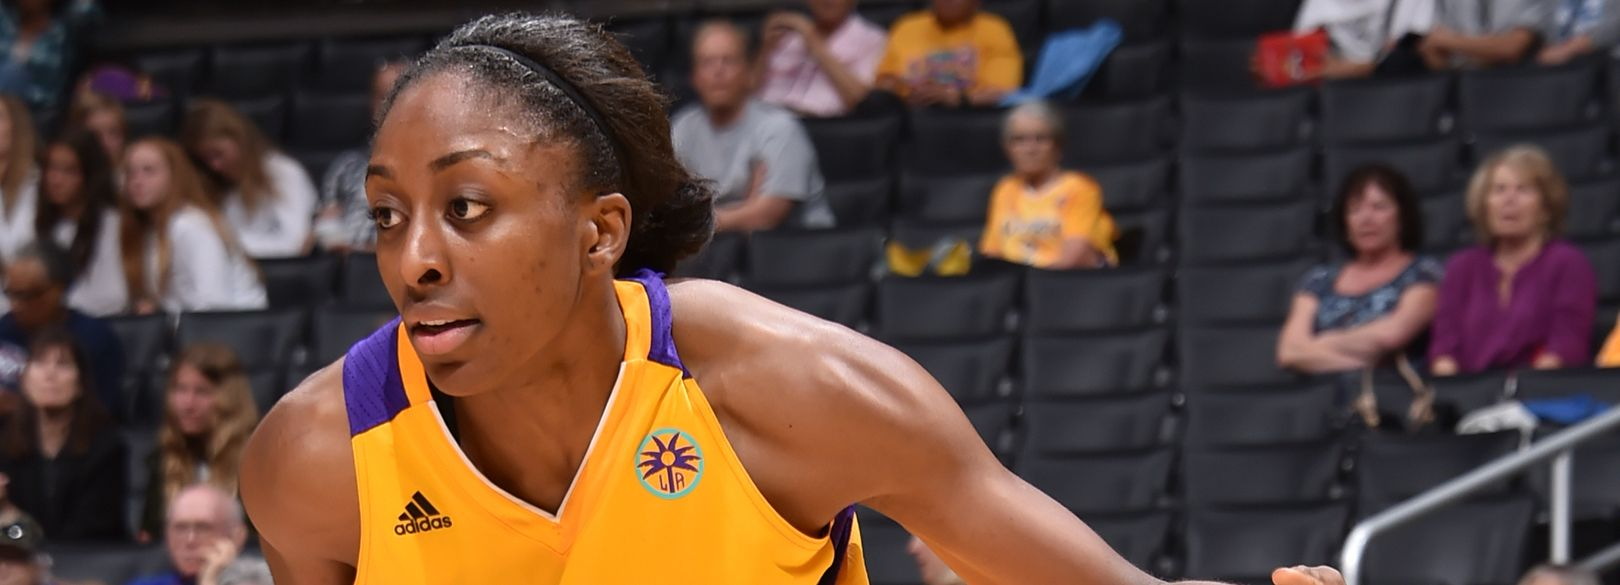 Sparks Forward Nneka Ogwumike Named Wnba Player Of The Week Los Angeles Sparks Stanford Womens Basketball Players Wnba